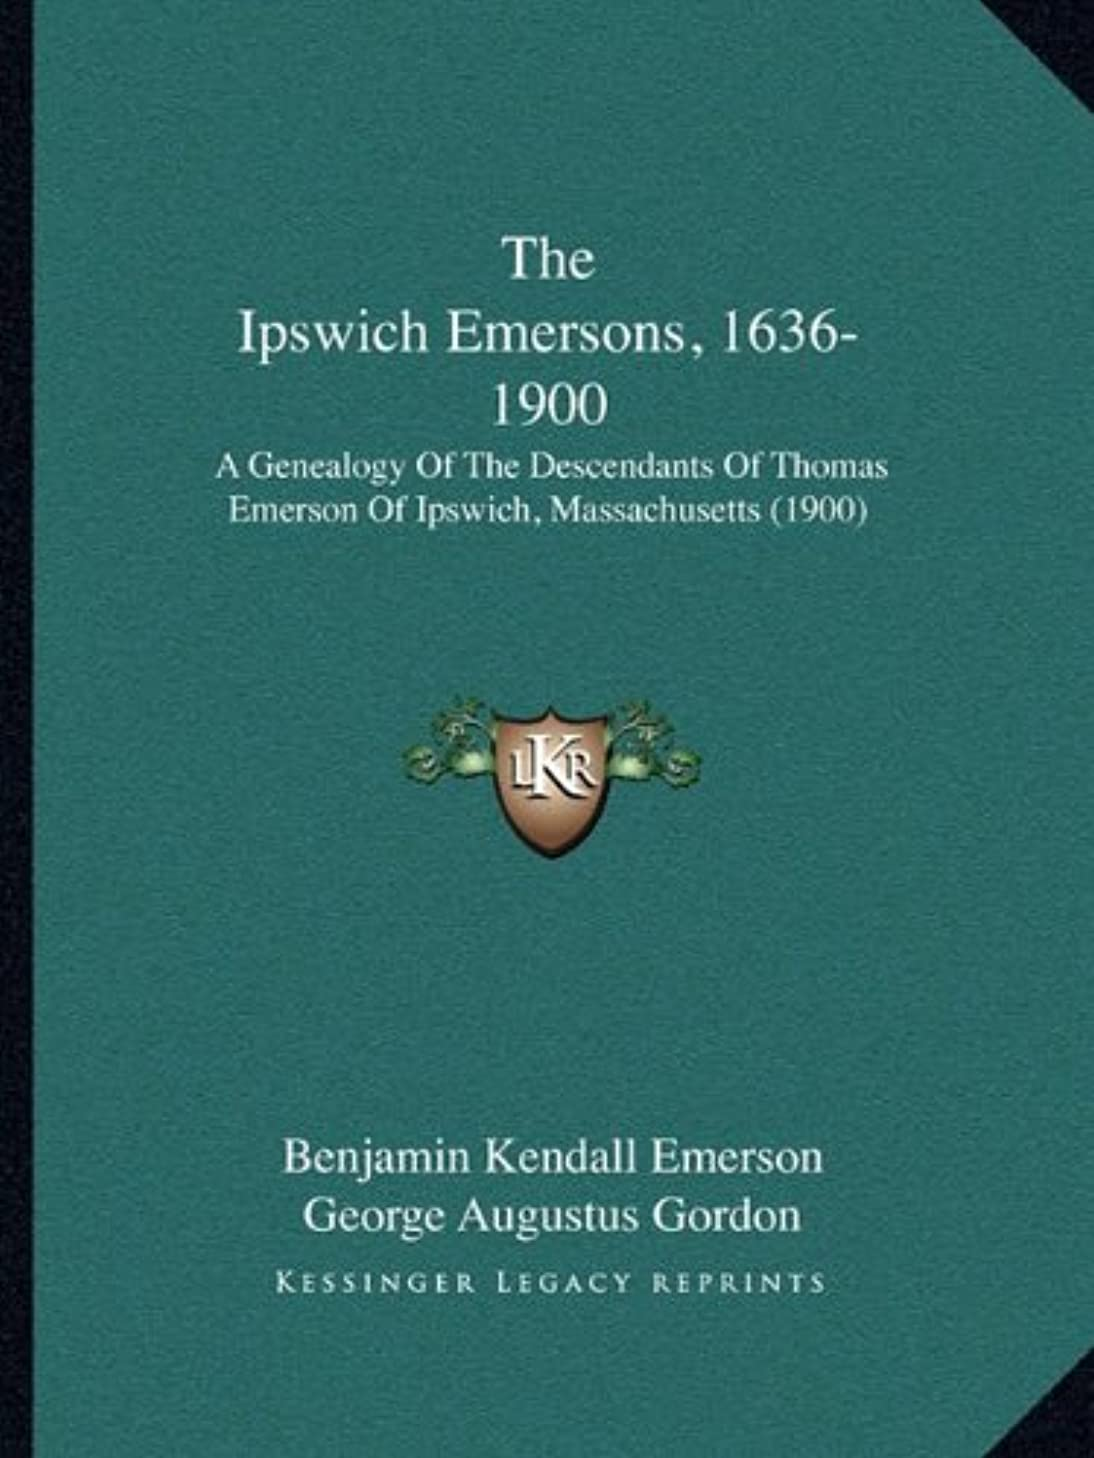 The Ipswich Emersons, 1636-1900: A Genealogy Of The Descendants Of Thomas Emerson Of Ipswich, Massachusetts (1900)